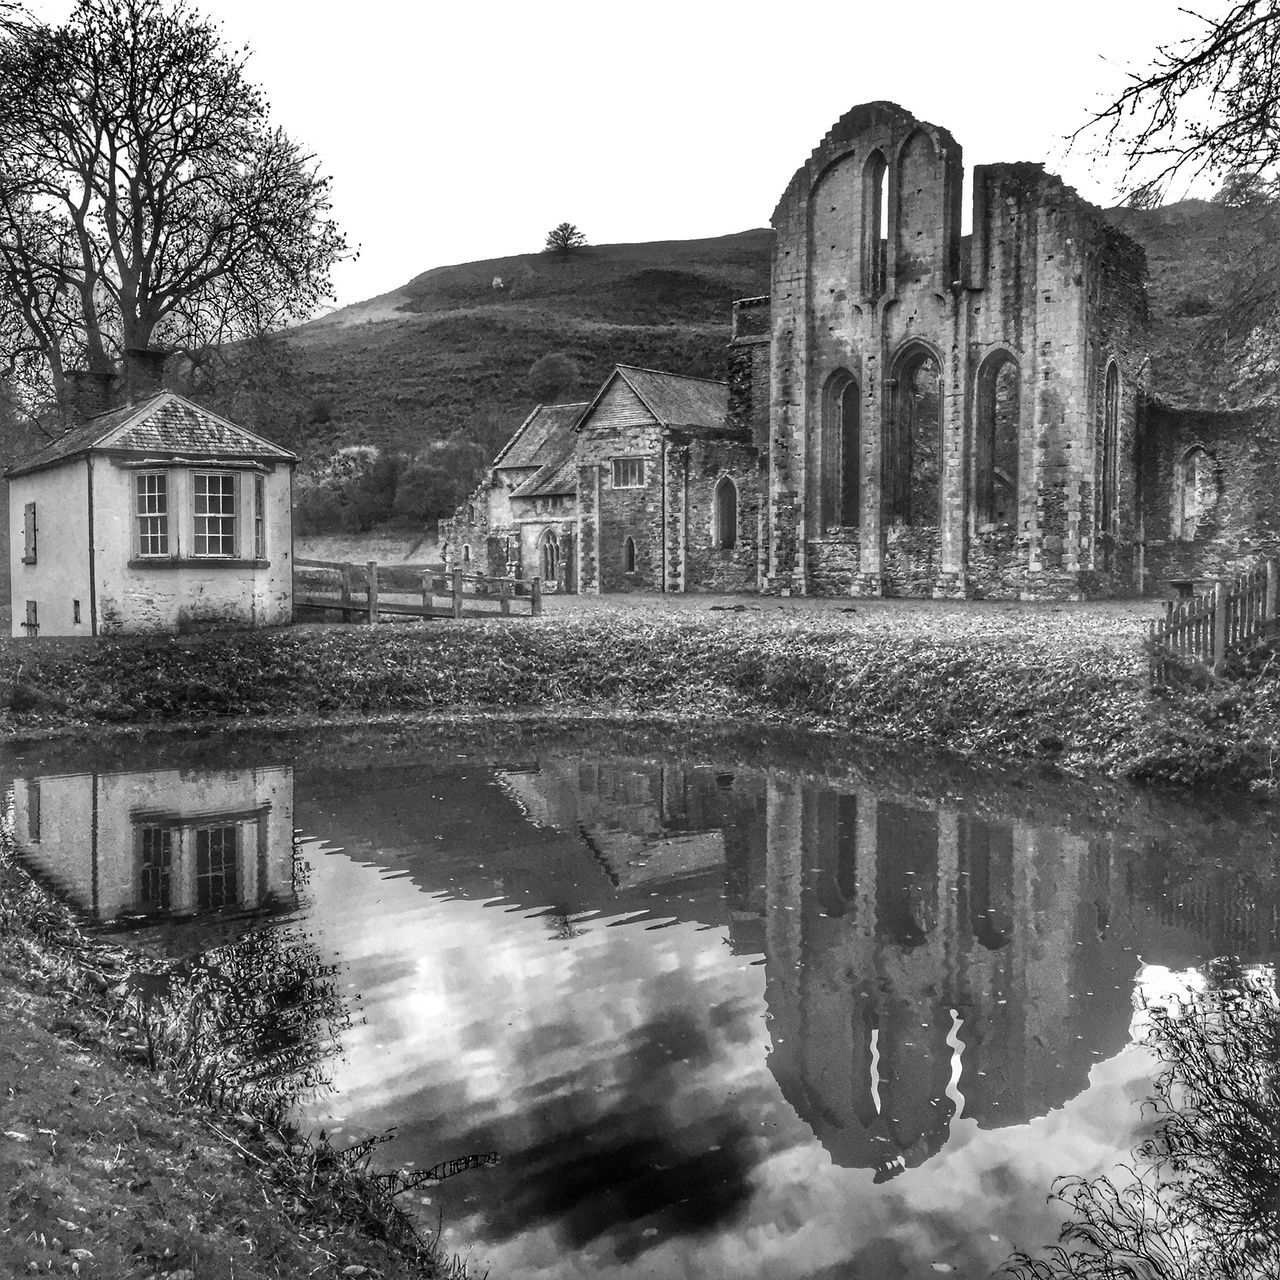 architecture, built structure, building exterior, water, reflection, house, no people, outdoors, day, tree, old ruin, clear sky, sky, nature